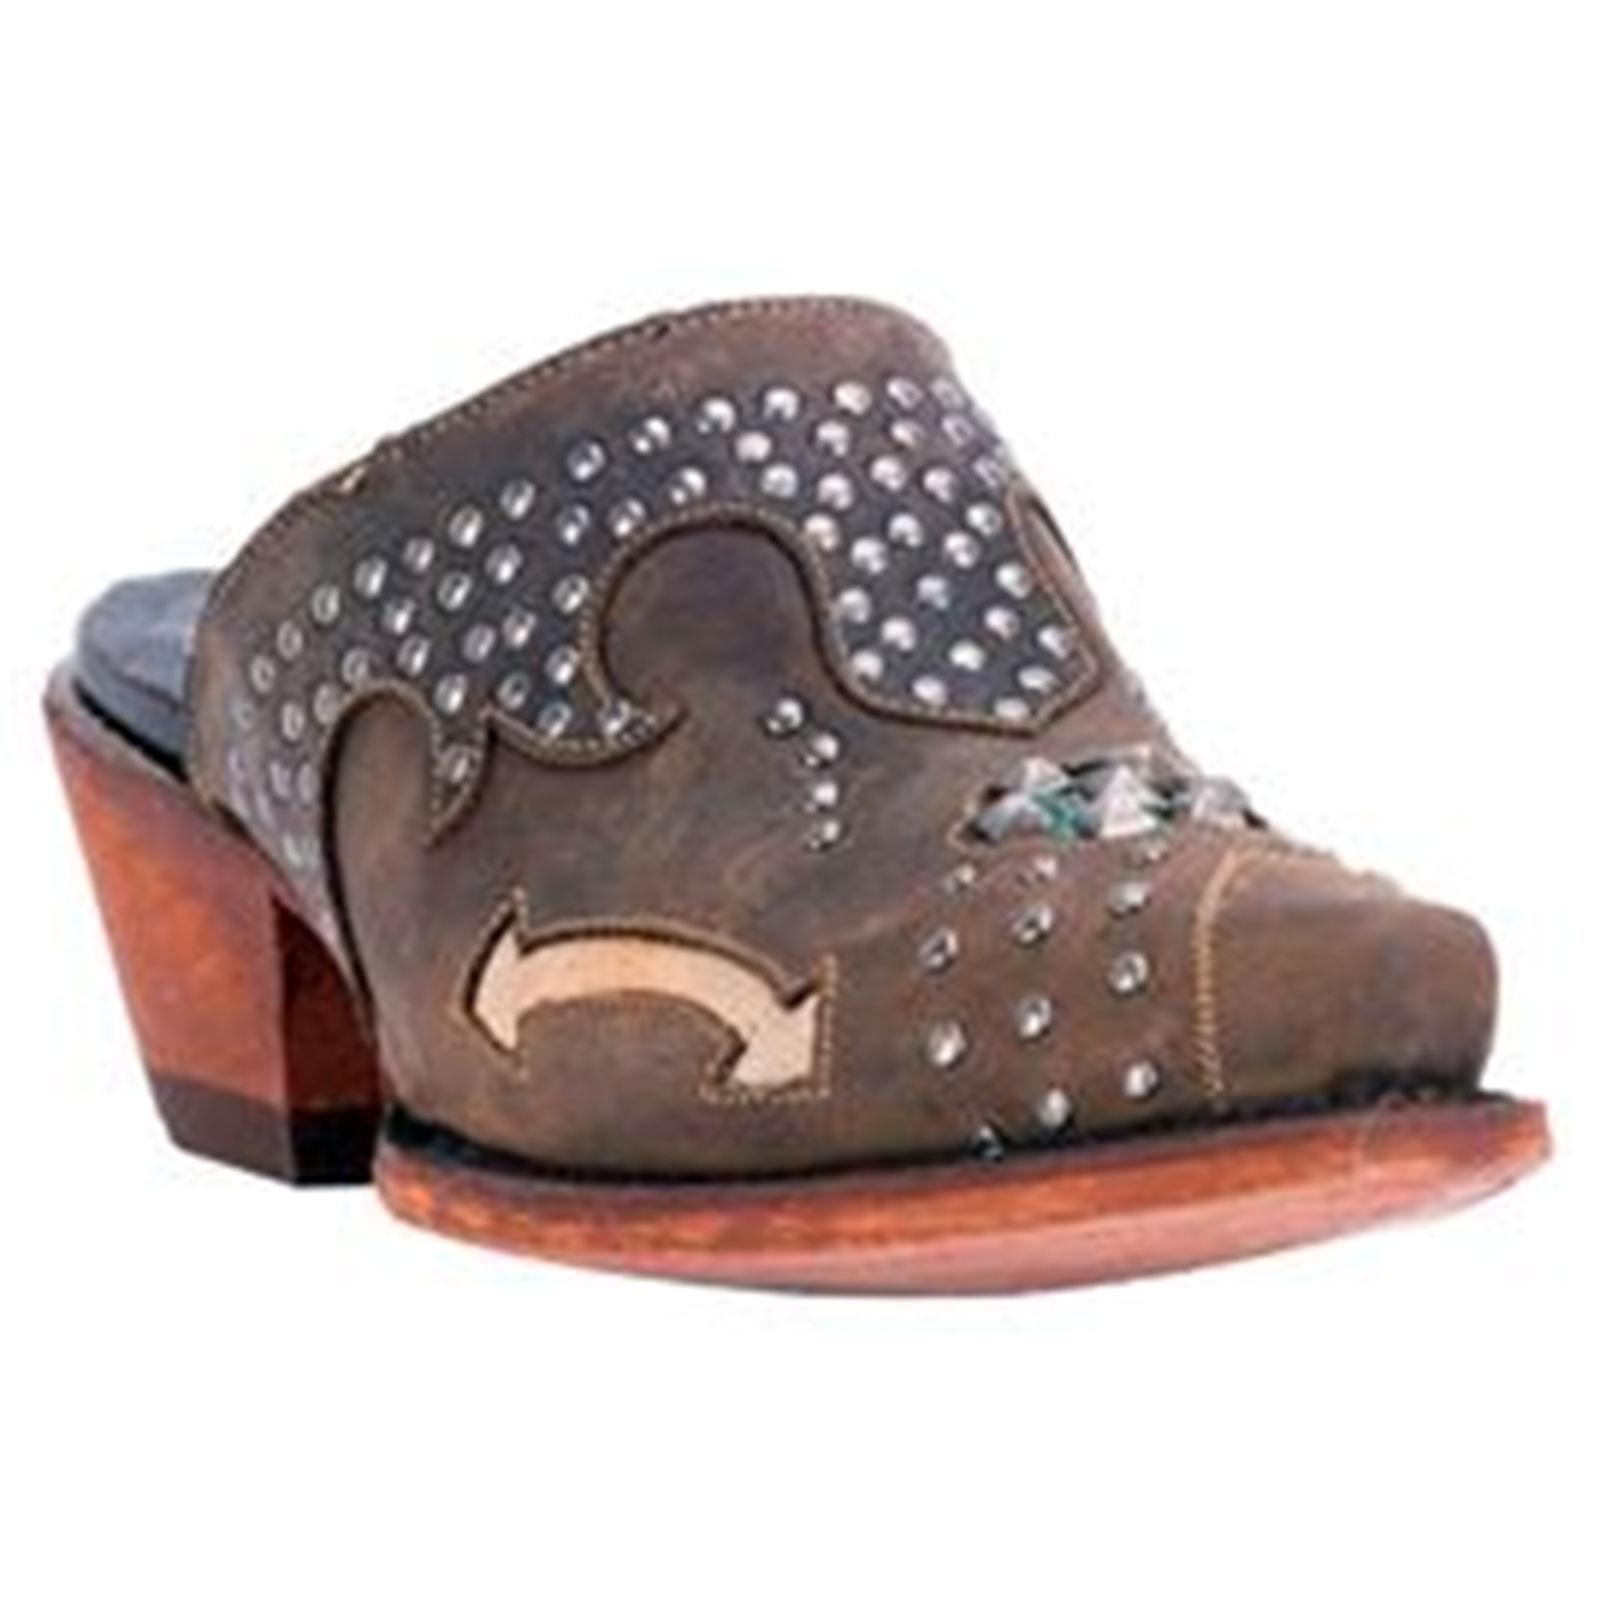 Dan Post Ladies Tan Oiled Clog with Studs Cushion Comfort Insole, DPP5099 by DAN POST